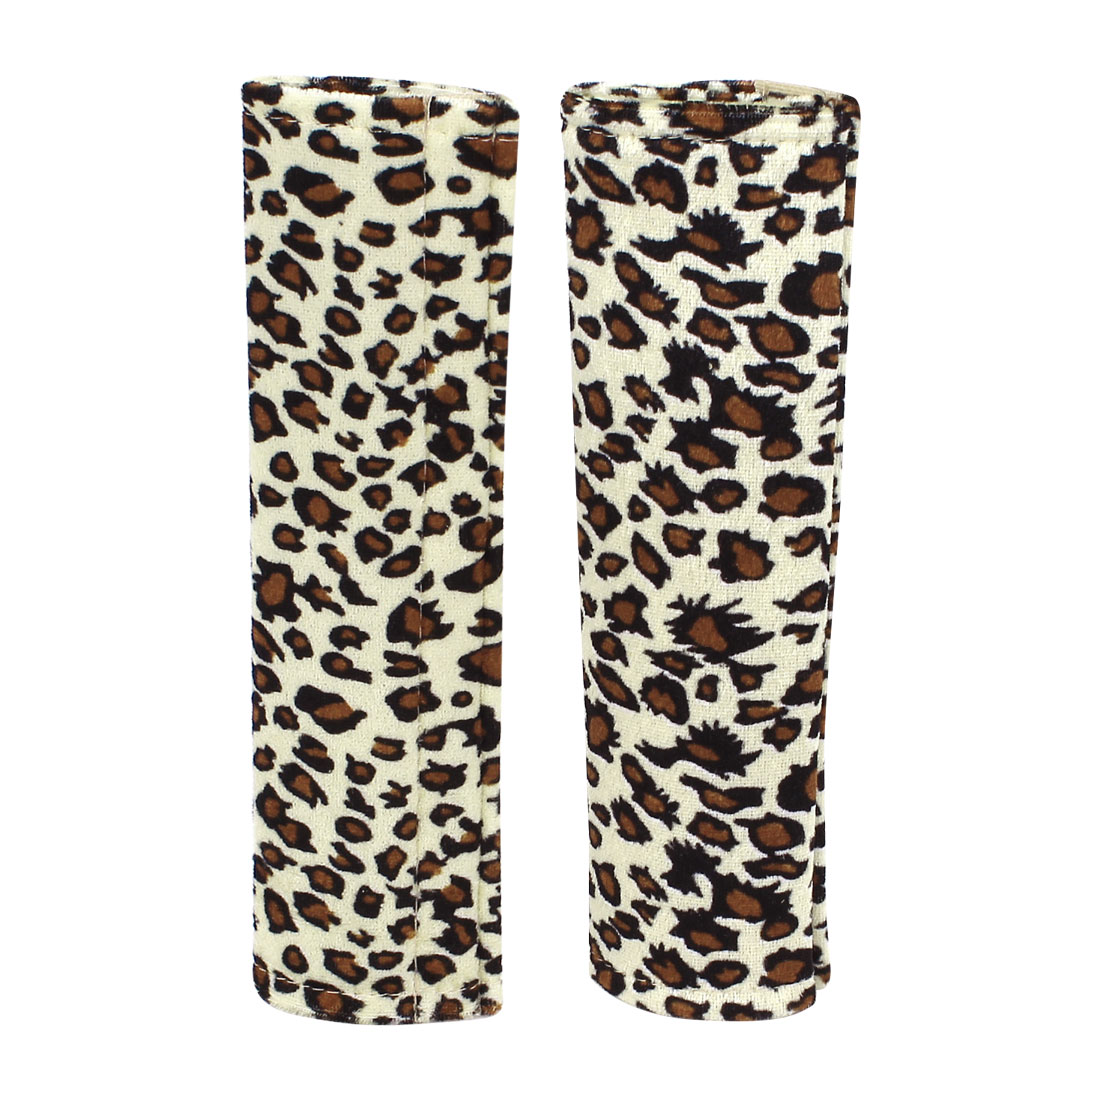 Leopard Print Hook Loop Closure Safety Seat Belt Cover Protector Beige Brown 2 Pcs